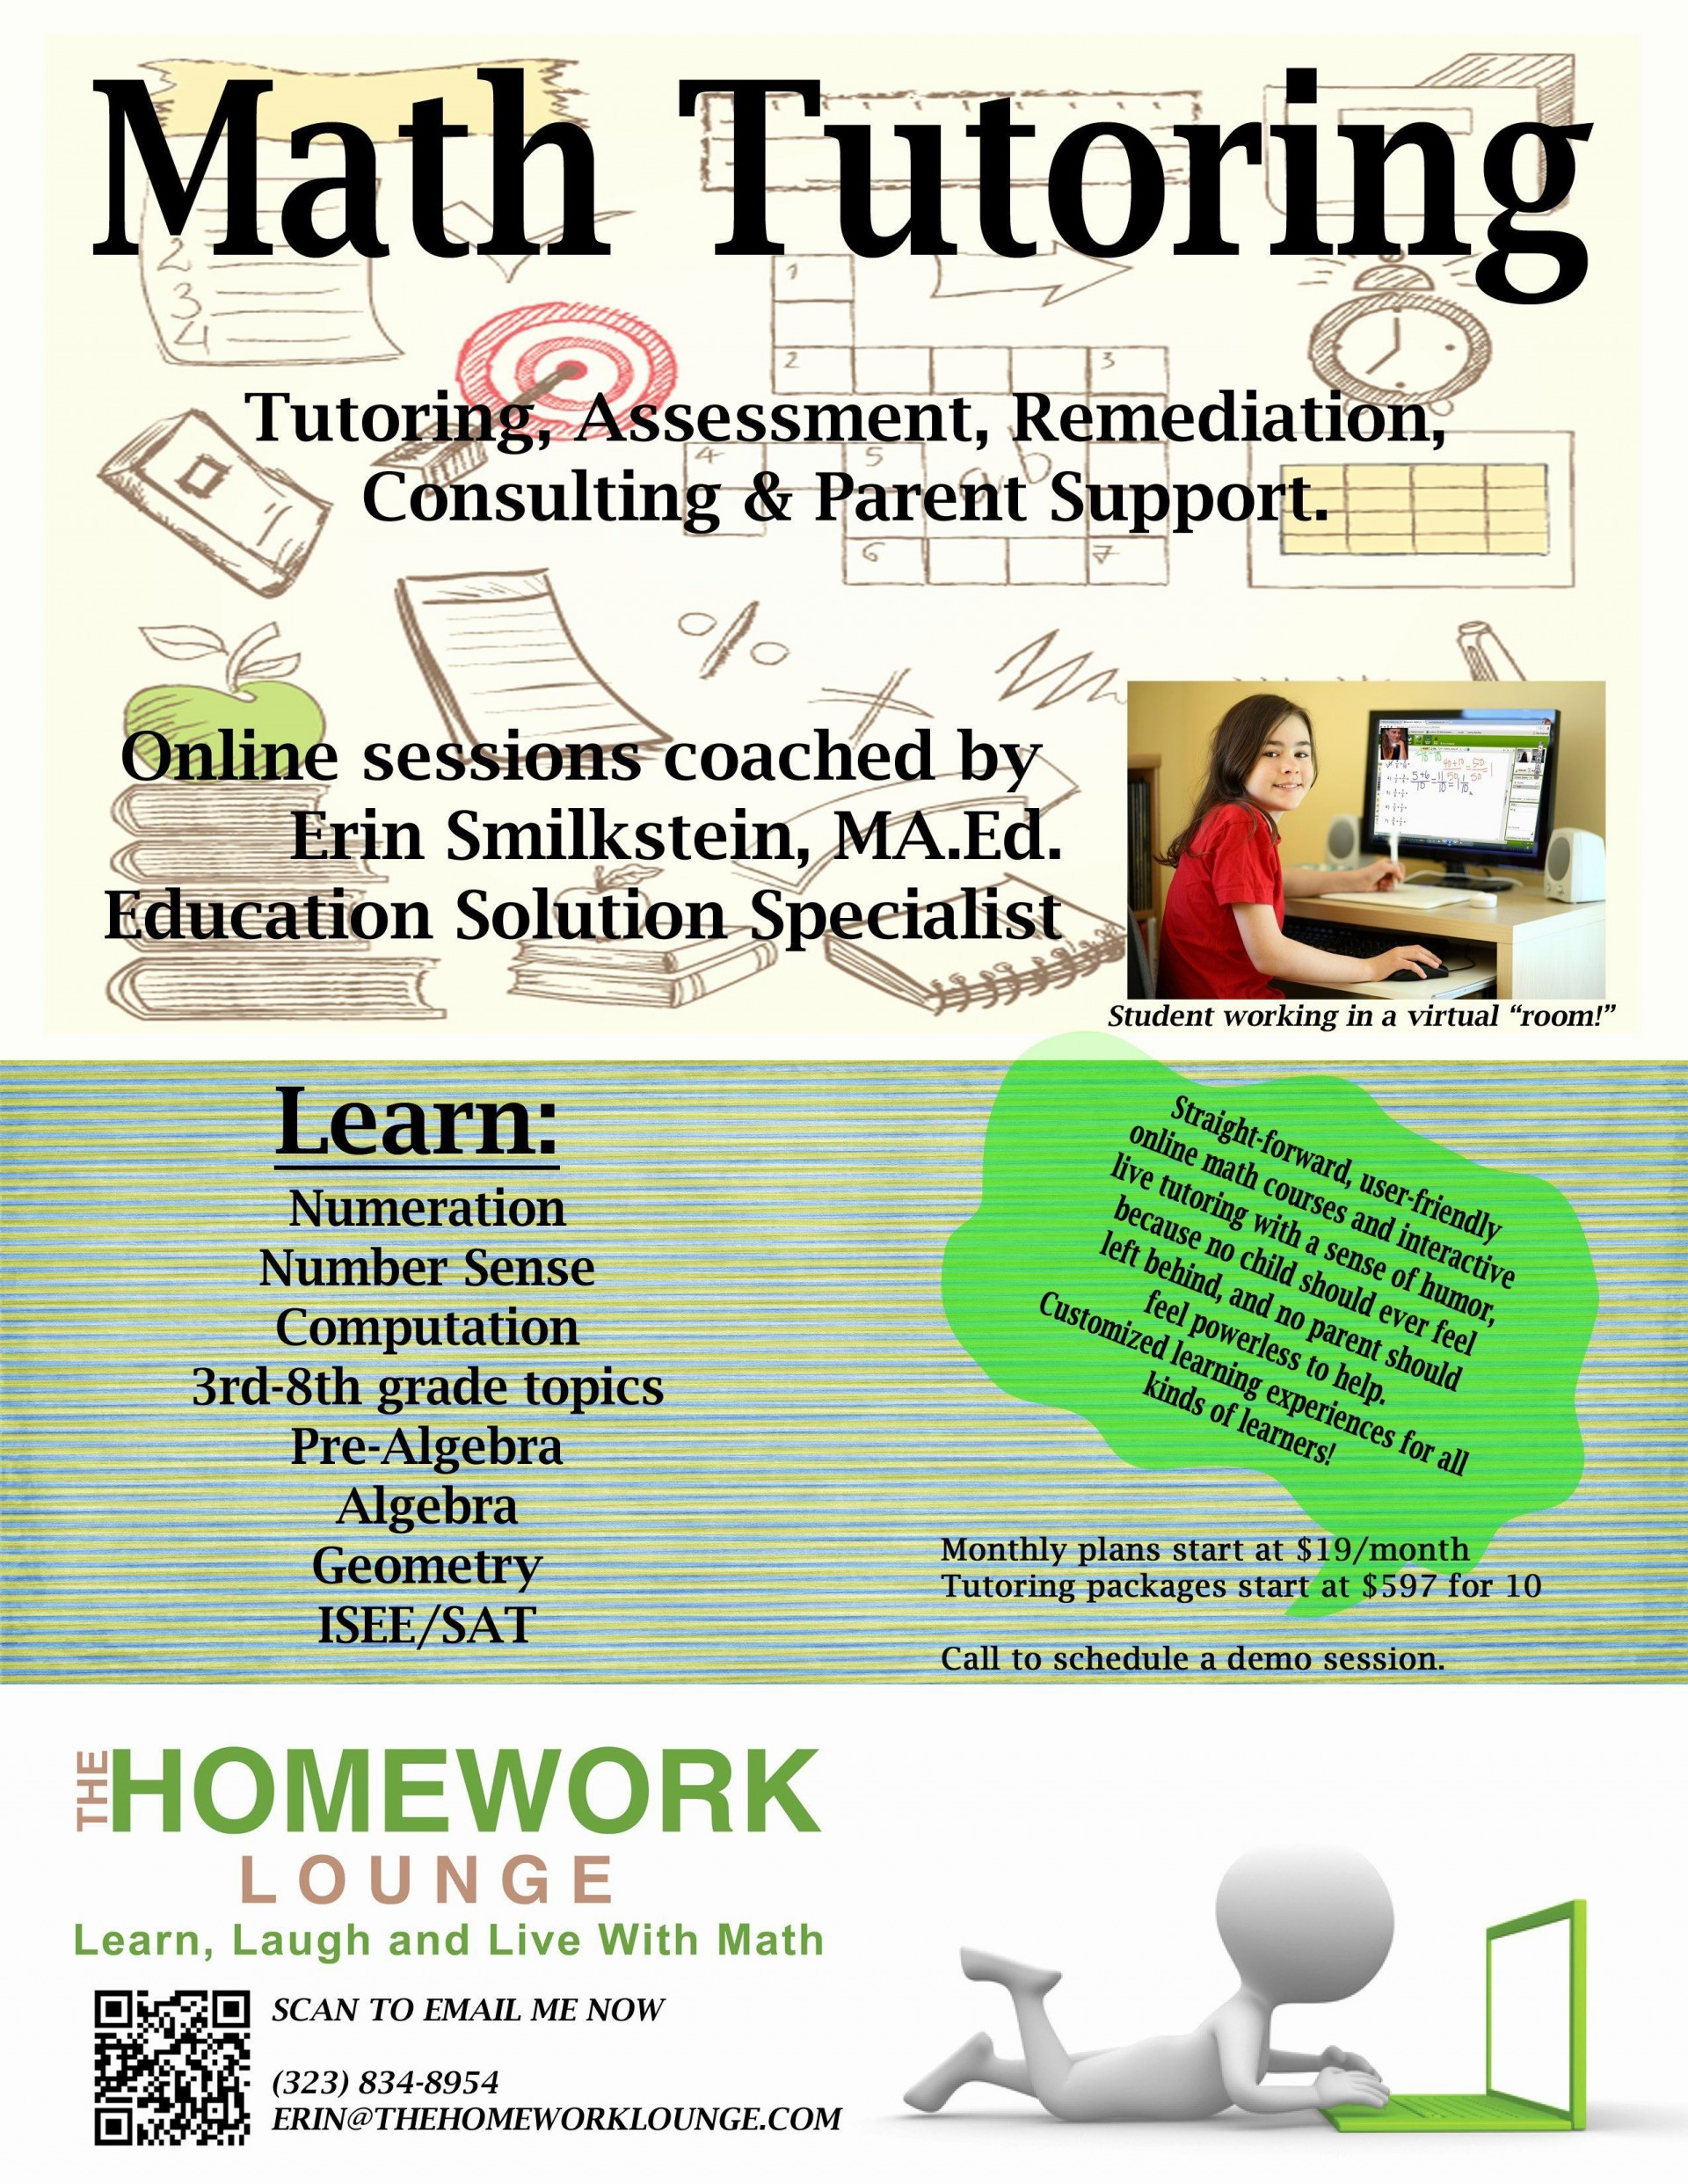 001 Wondrou Tutoring Flyer Template Free Photo  Word1920